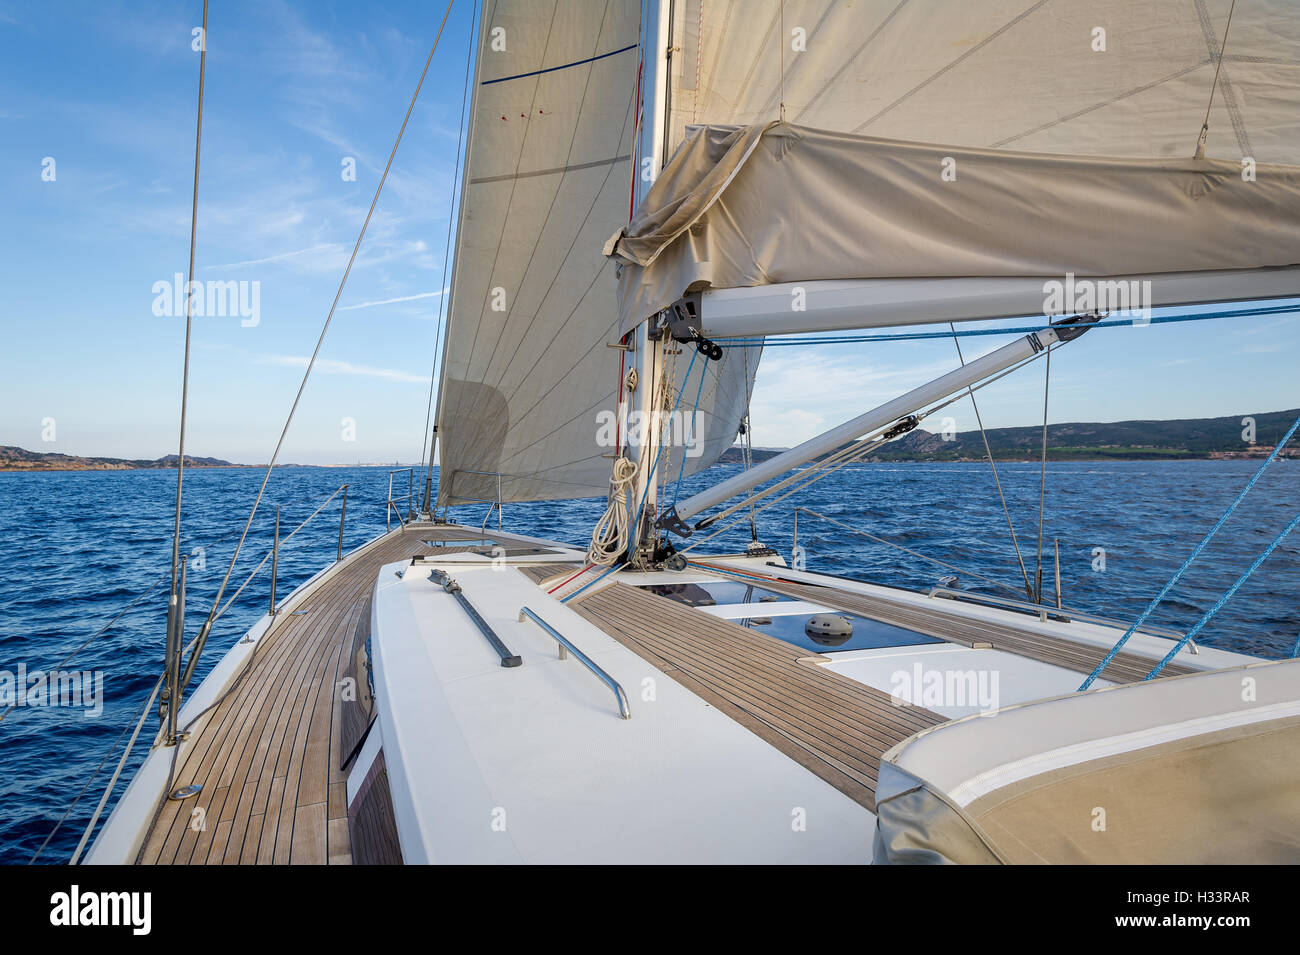 Sailing boat teak deck and hoisted sails, view from the cockpit to the bow. - Stock Image